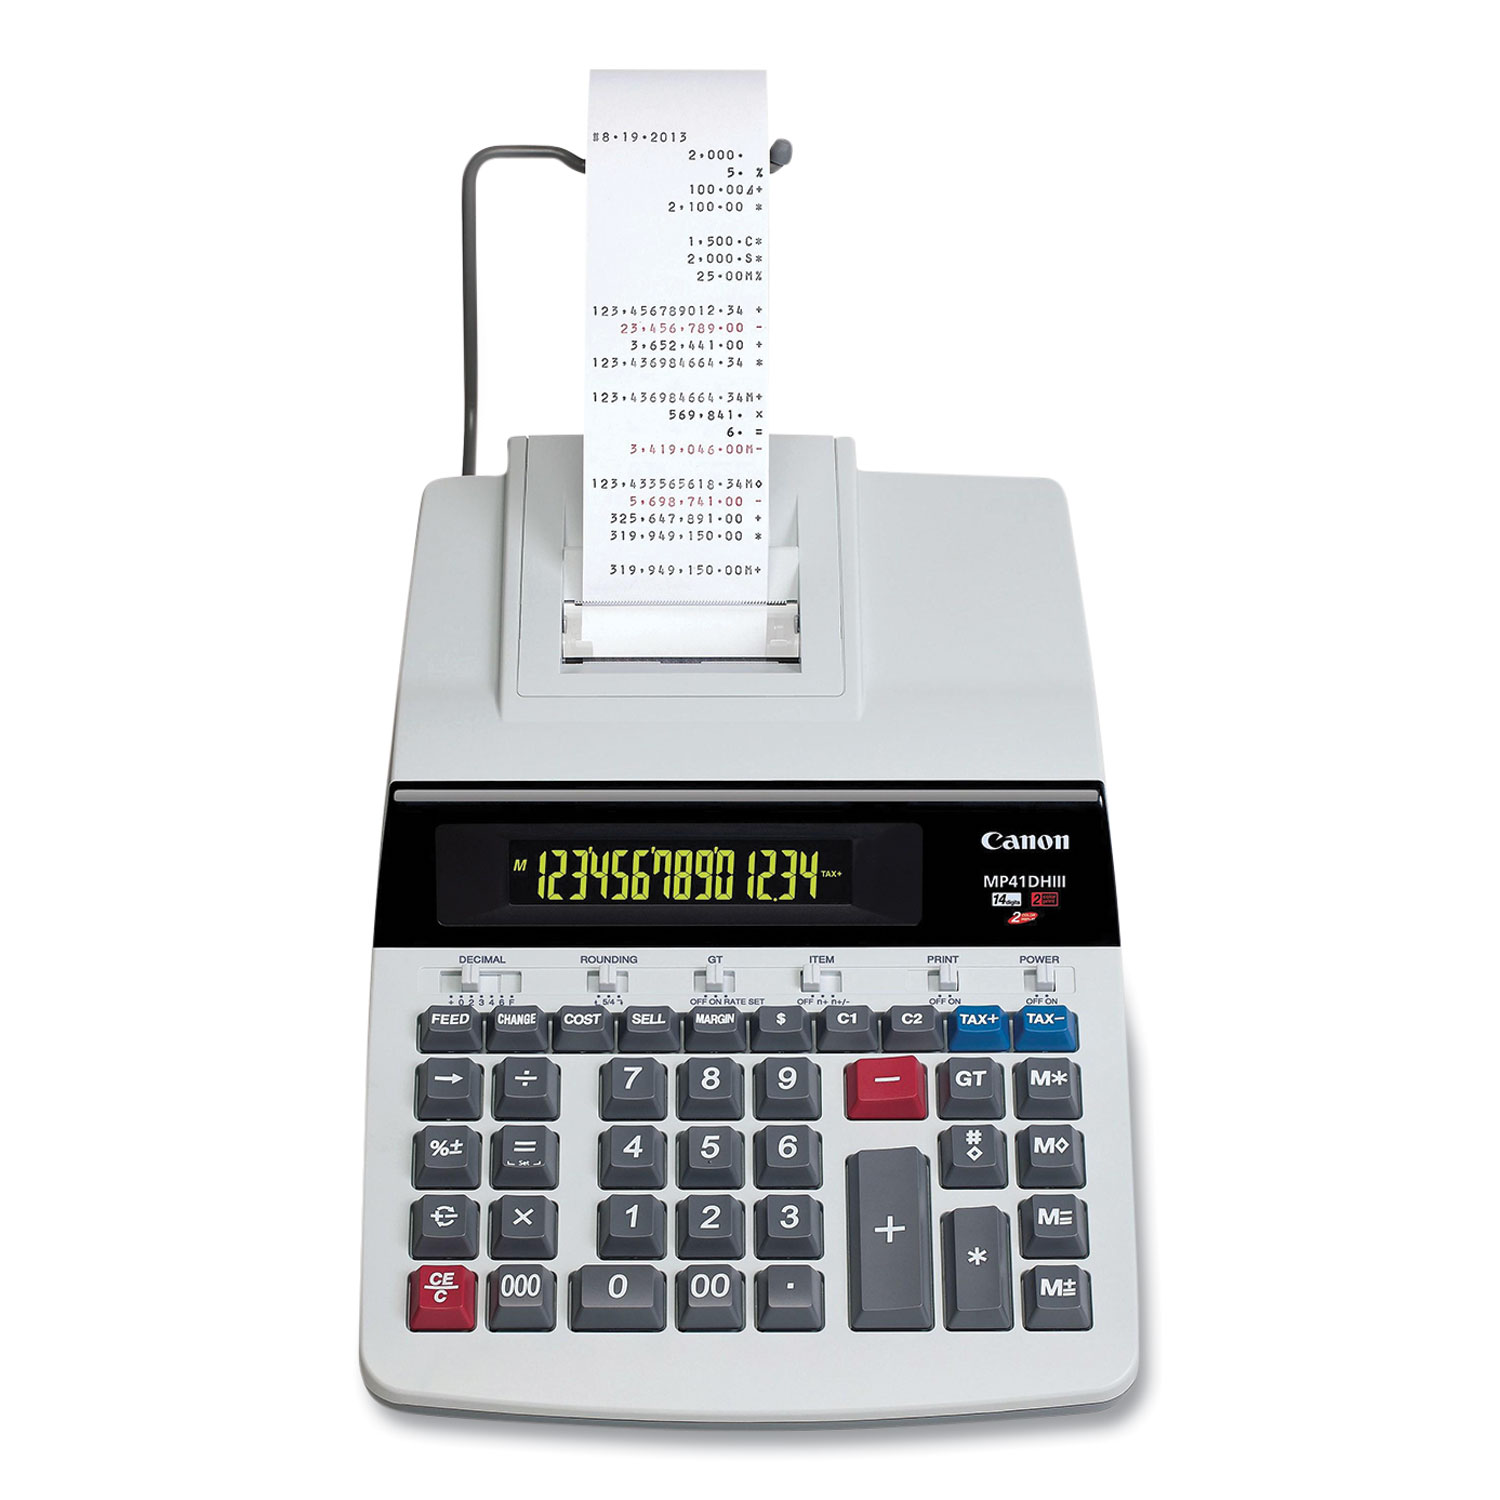 Canon® MP41DHIII 14-Digit Desktop Calculator, Black/Red Print, 4.3 Lines/Sec